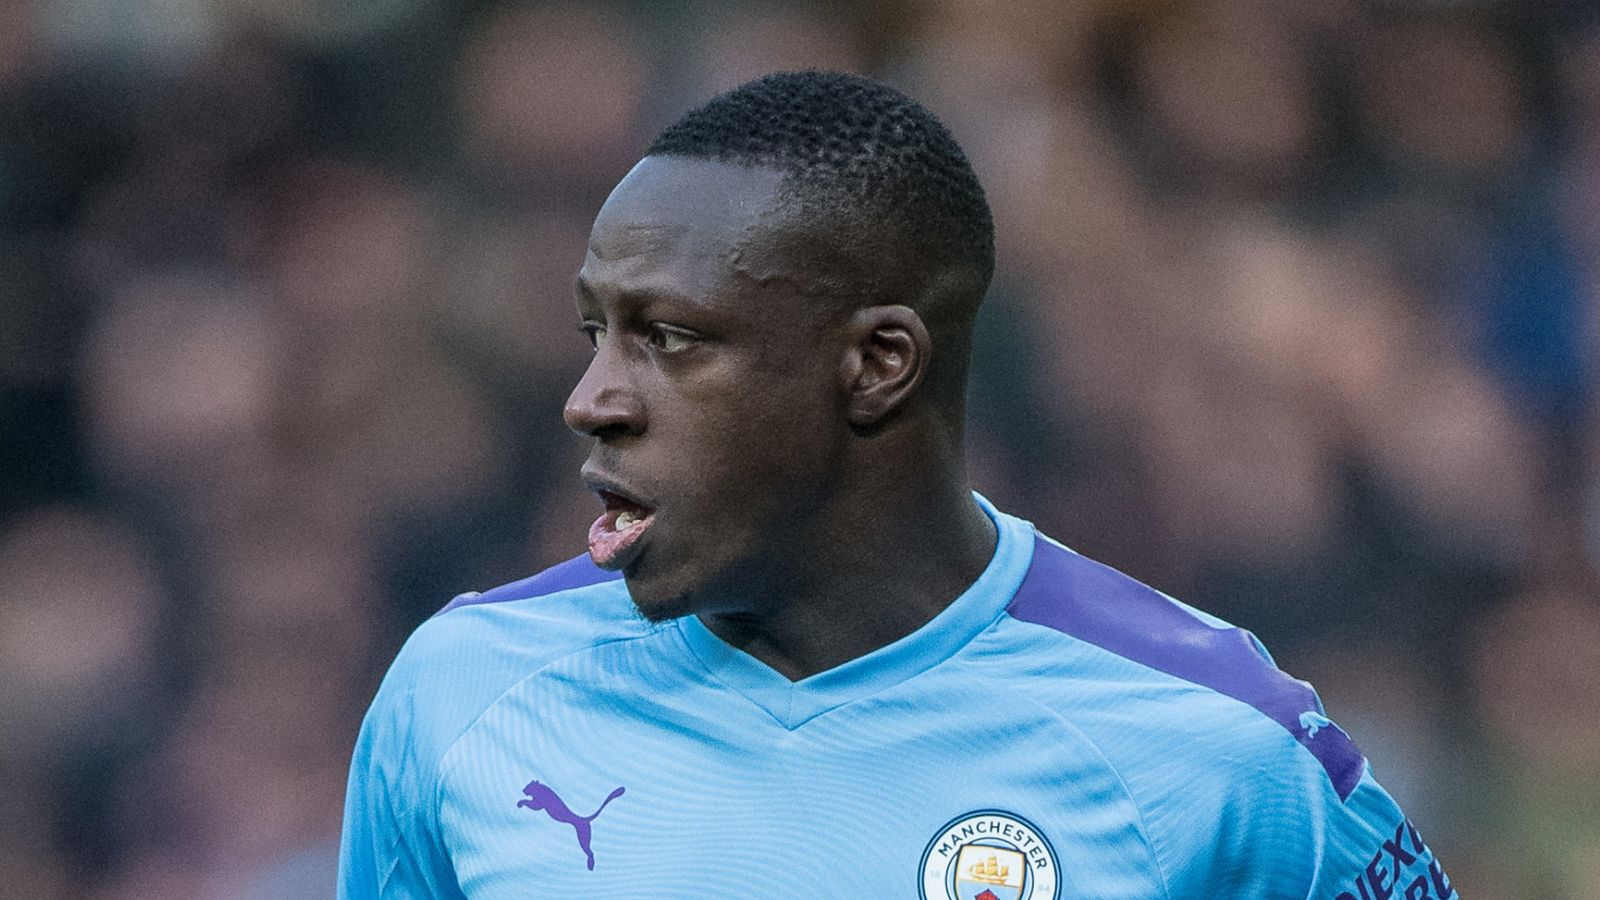 Benjamin Mendy self-isolating as a coronavirus precaution after family member falls ill